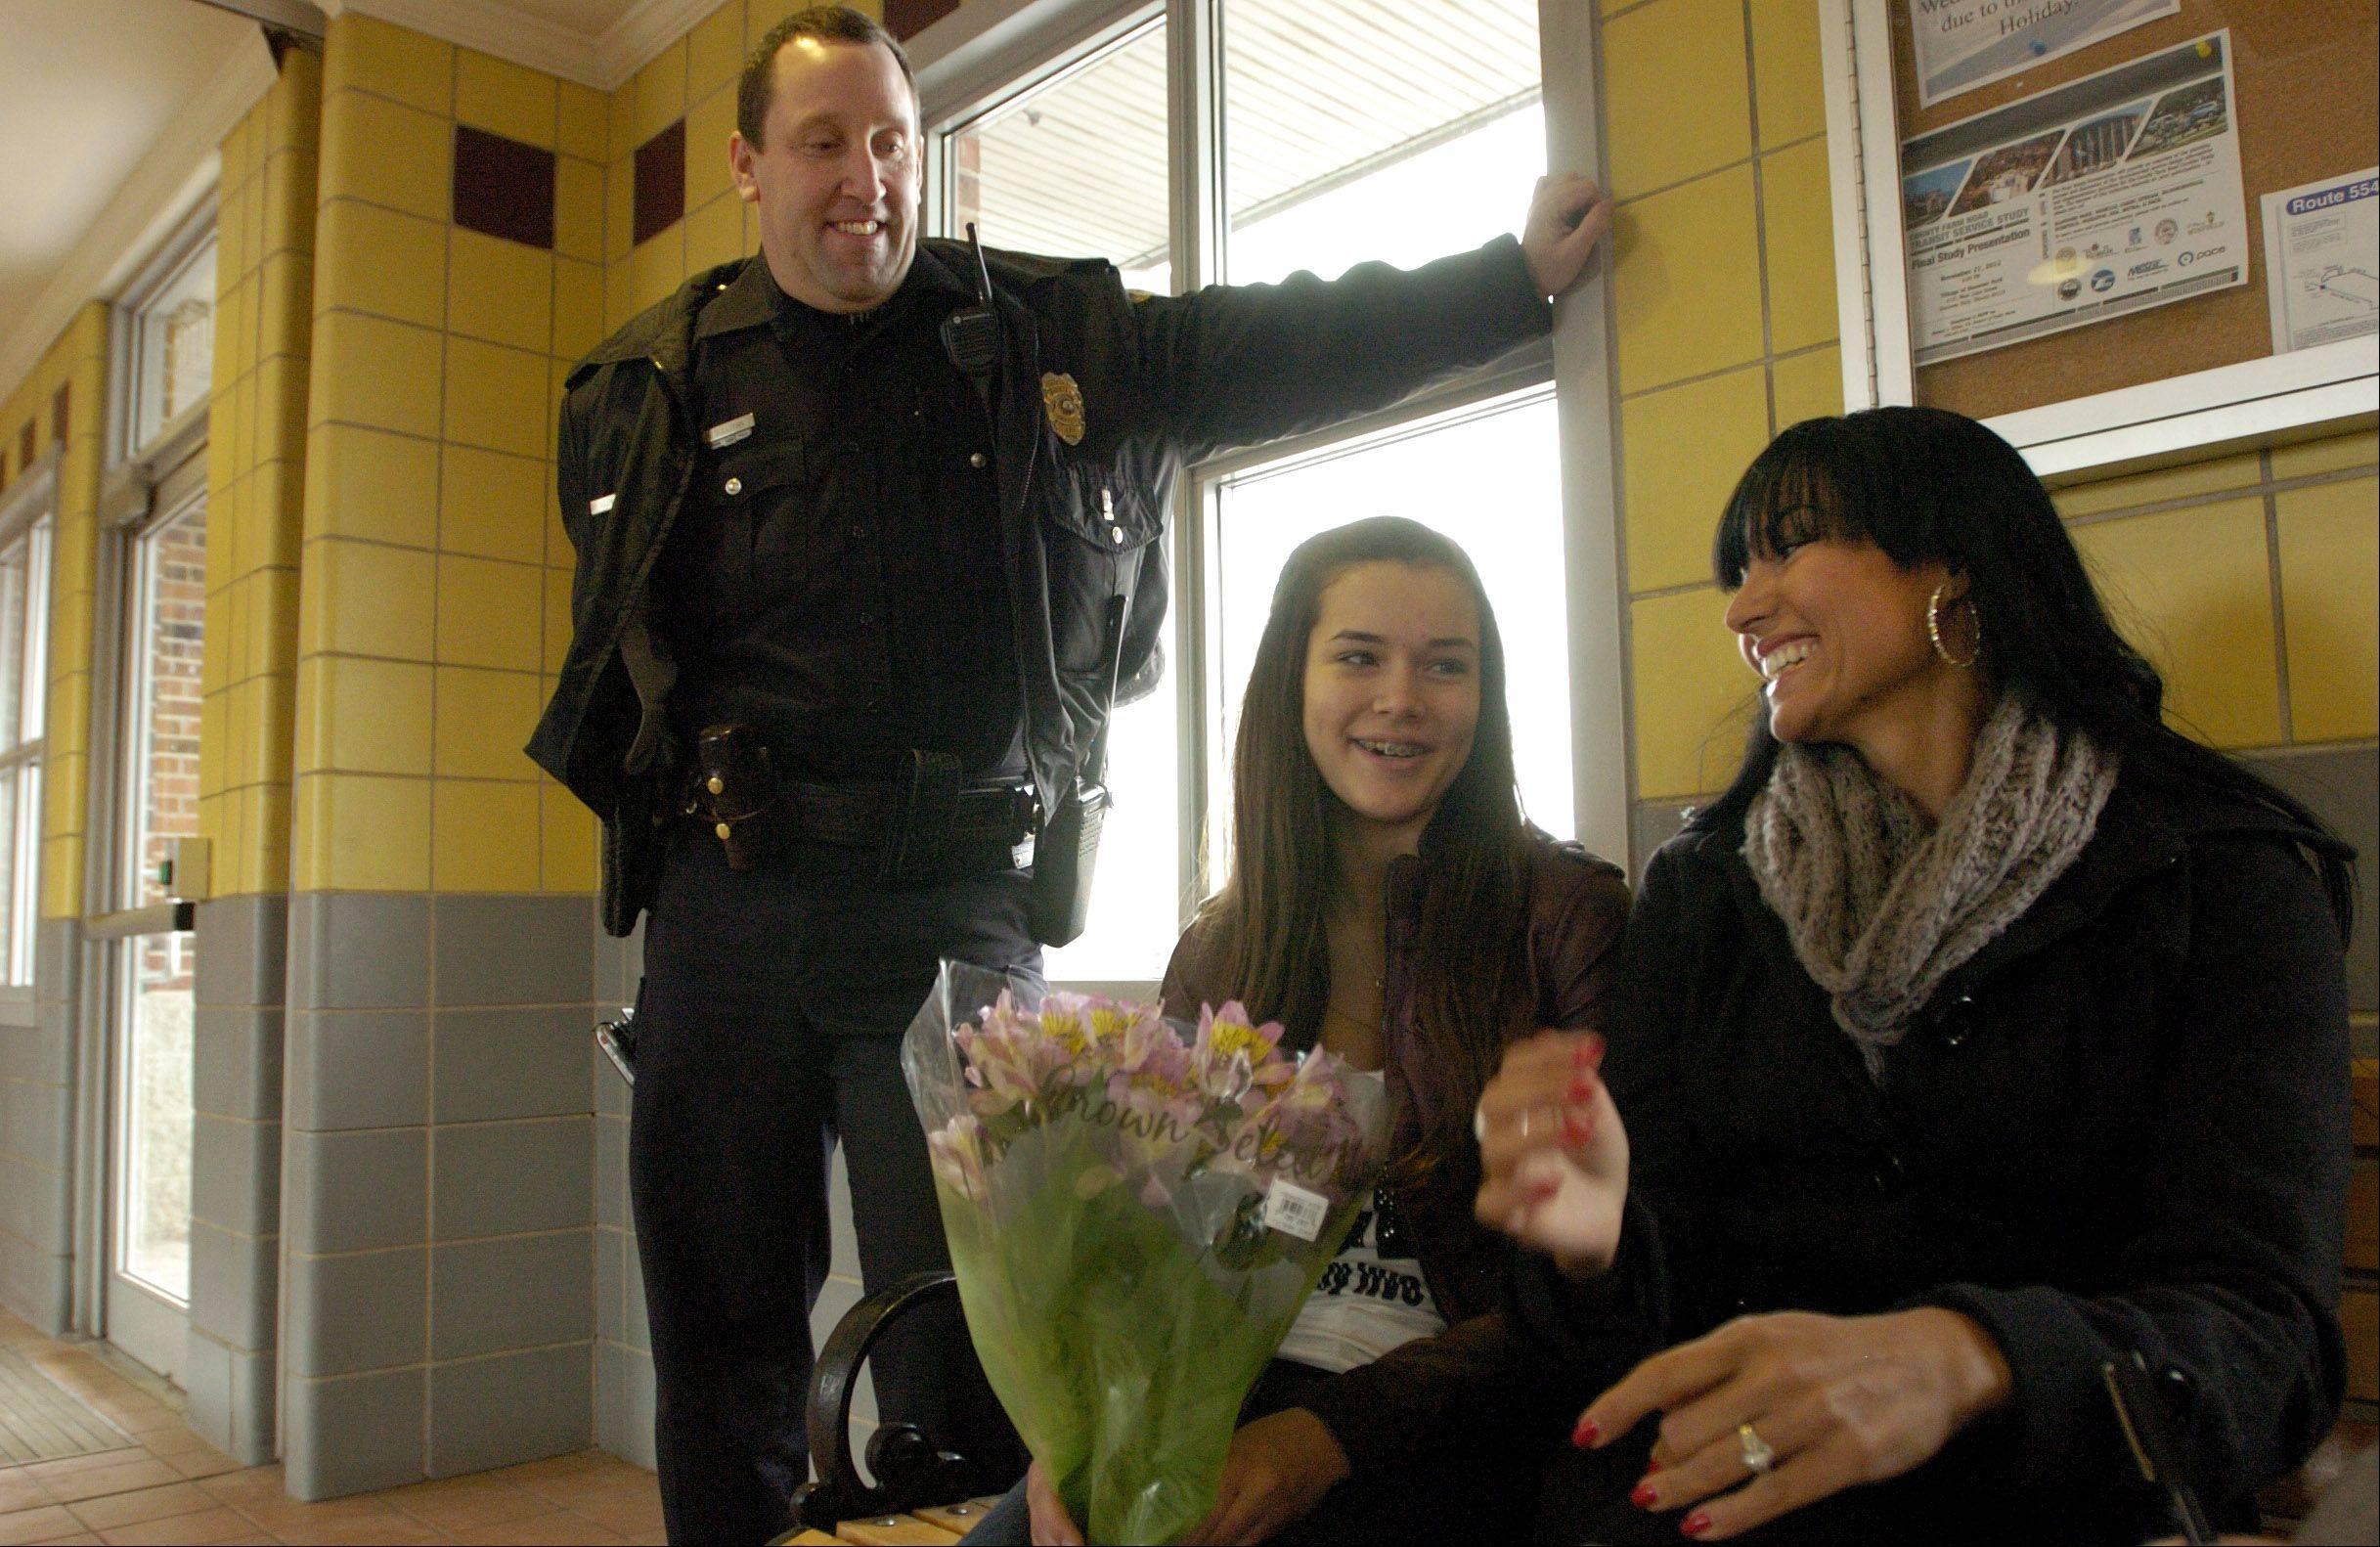 Hanover Park police Officer George Sullivan reunites with Brianna Elizondo and her mom, Monica Bakos, 13 years after delivering Brianna in the Hanover Park Metra station parking lot.